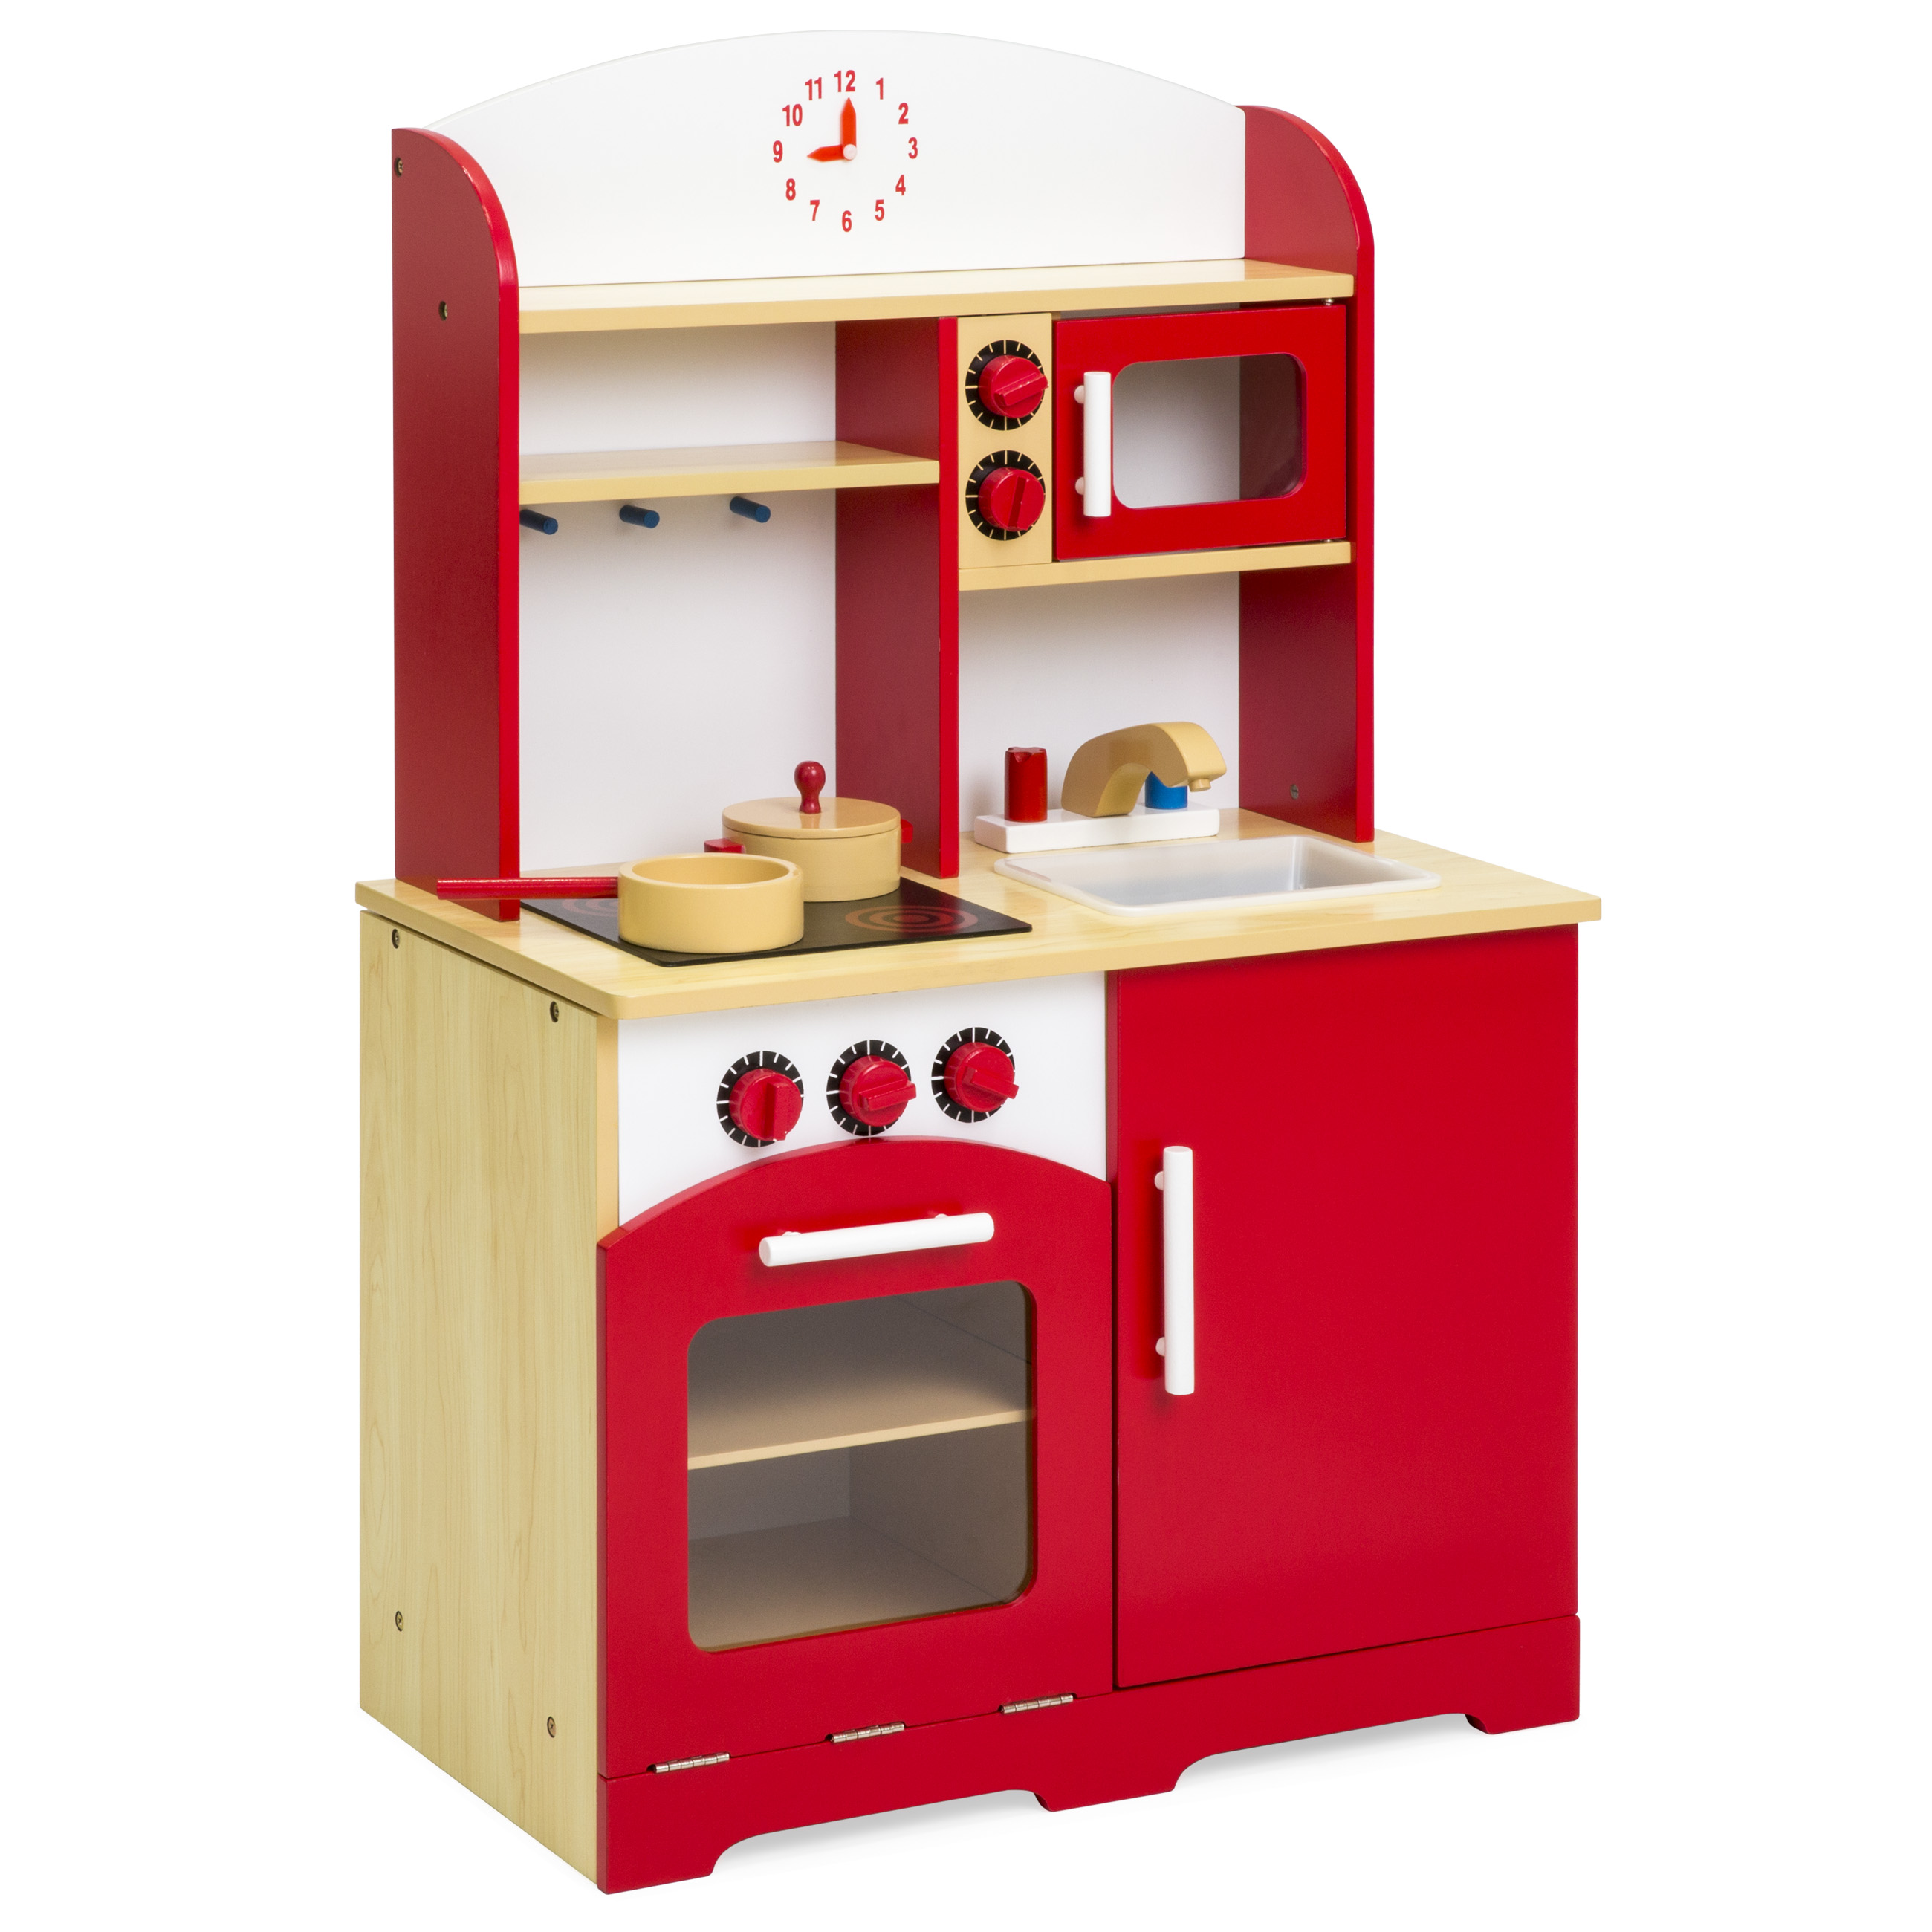 Best Choice Products Kids Wooden Kitchen Cooking Play Set w  Wooden Pot & Pan Accessories Red by Best Choice Products